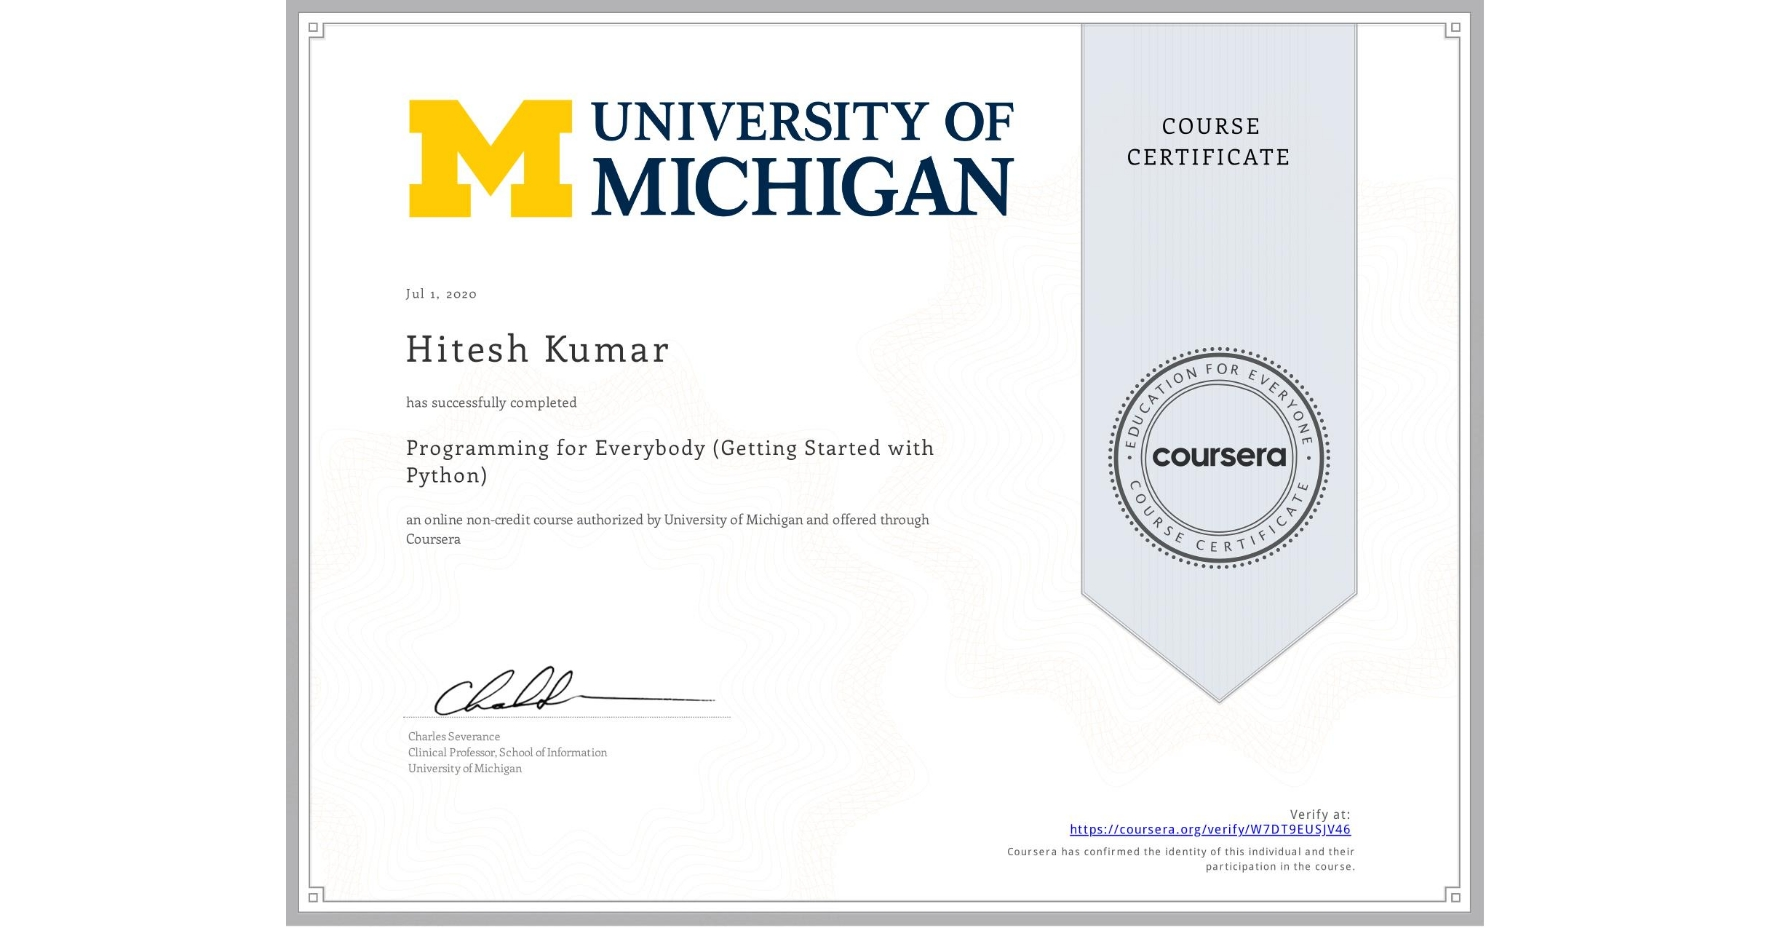 View certificate for Hitesh Kumar, Programming for Everybody (Getting Started with Python), an online non-credit course authorized by University of Michigan and offered through Coursera